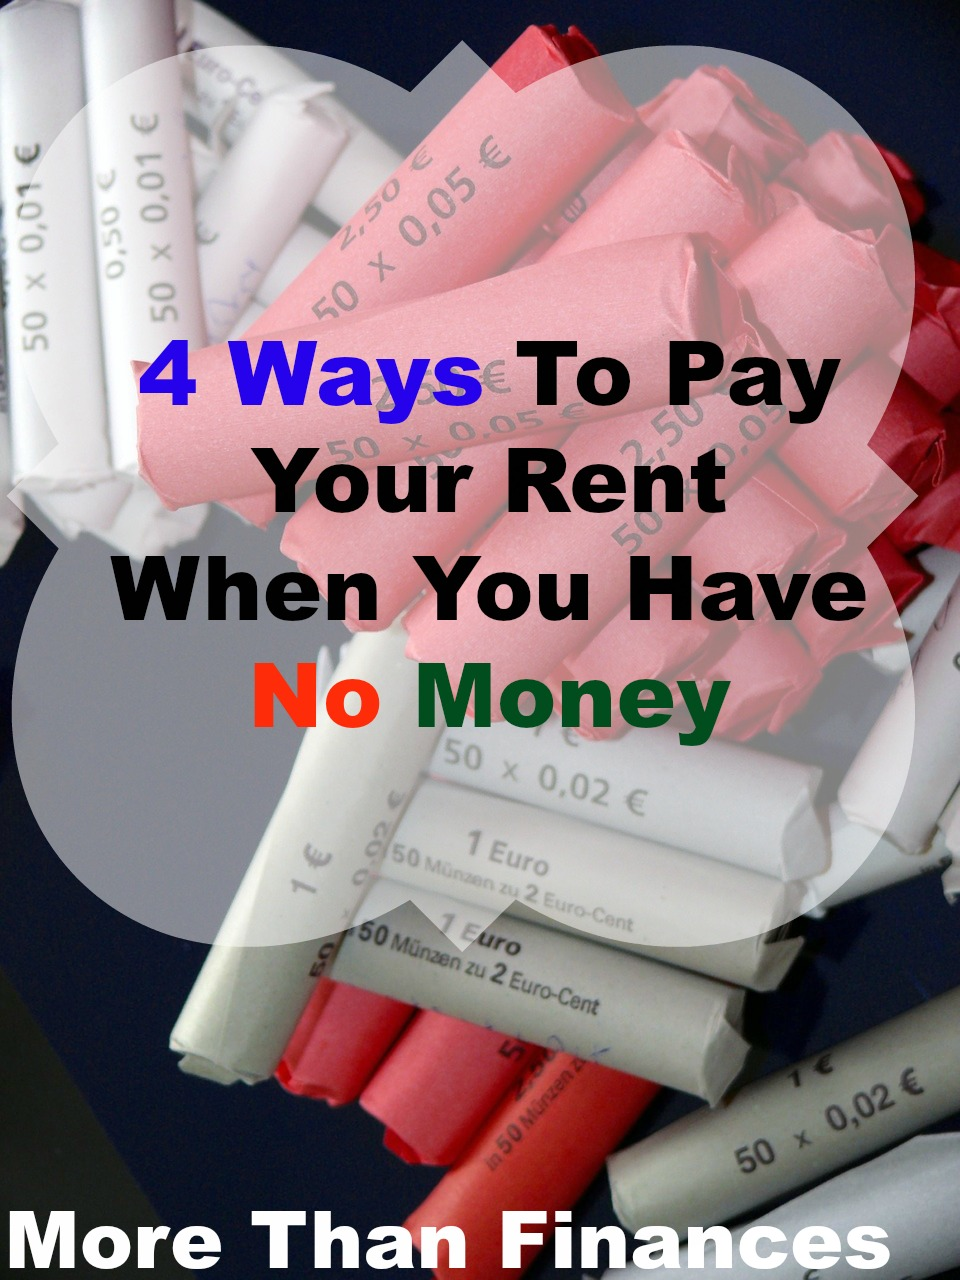 4 Ways To Pay Your Rent When You Have No Money